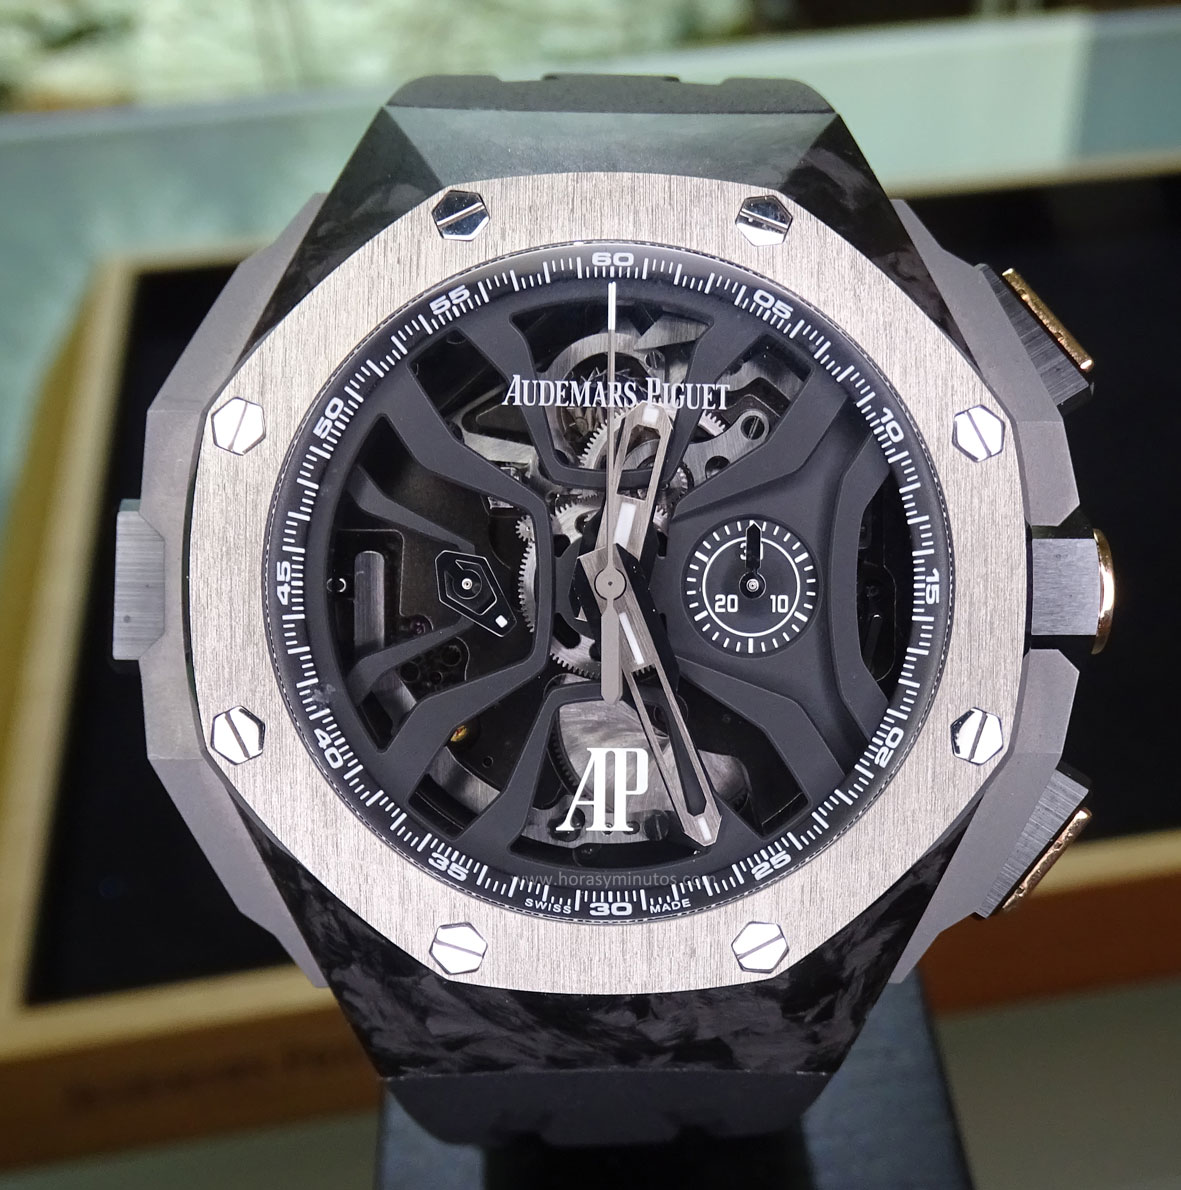 SIAR 2015 - Audemars Piguet Royal Oak Concept Laptimer Michael Schumacher